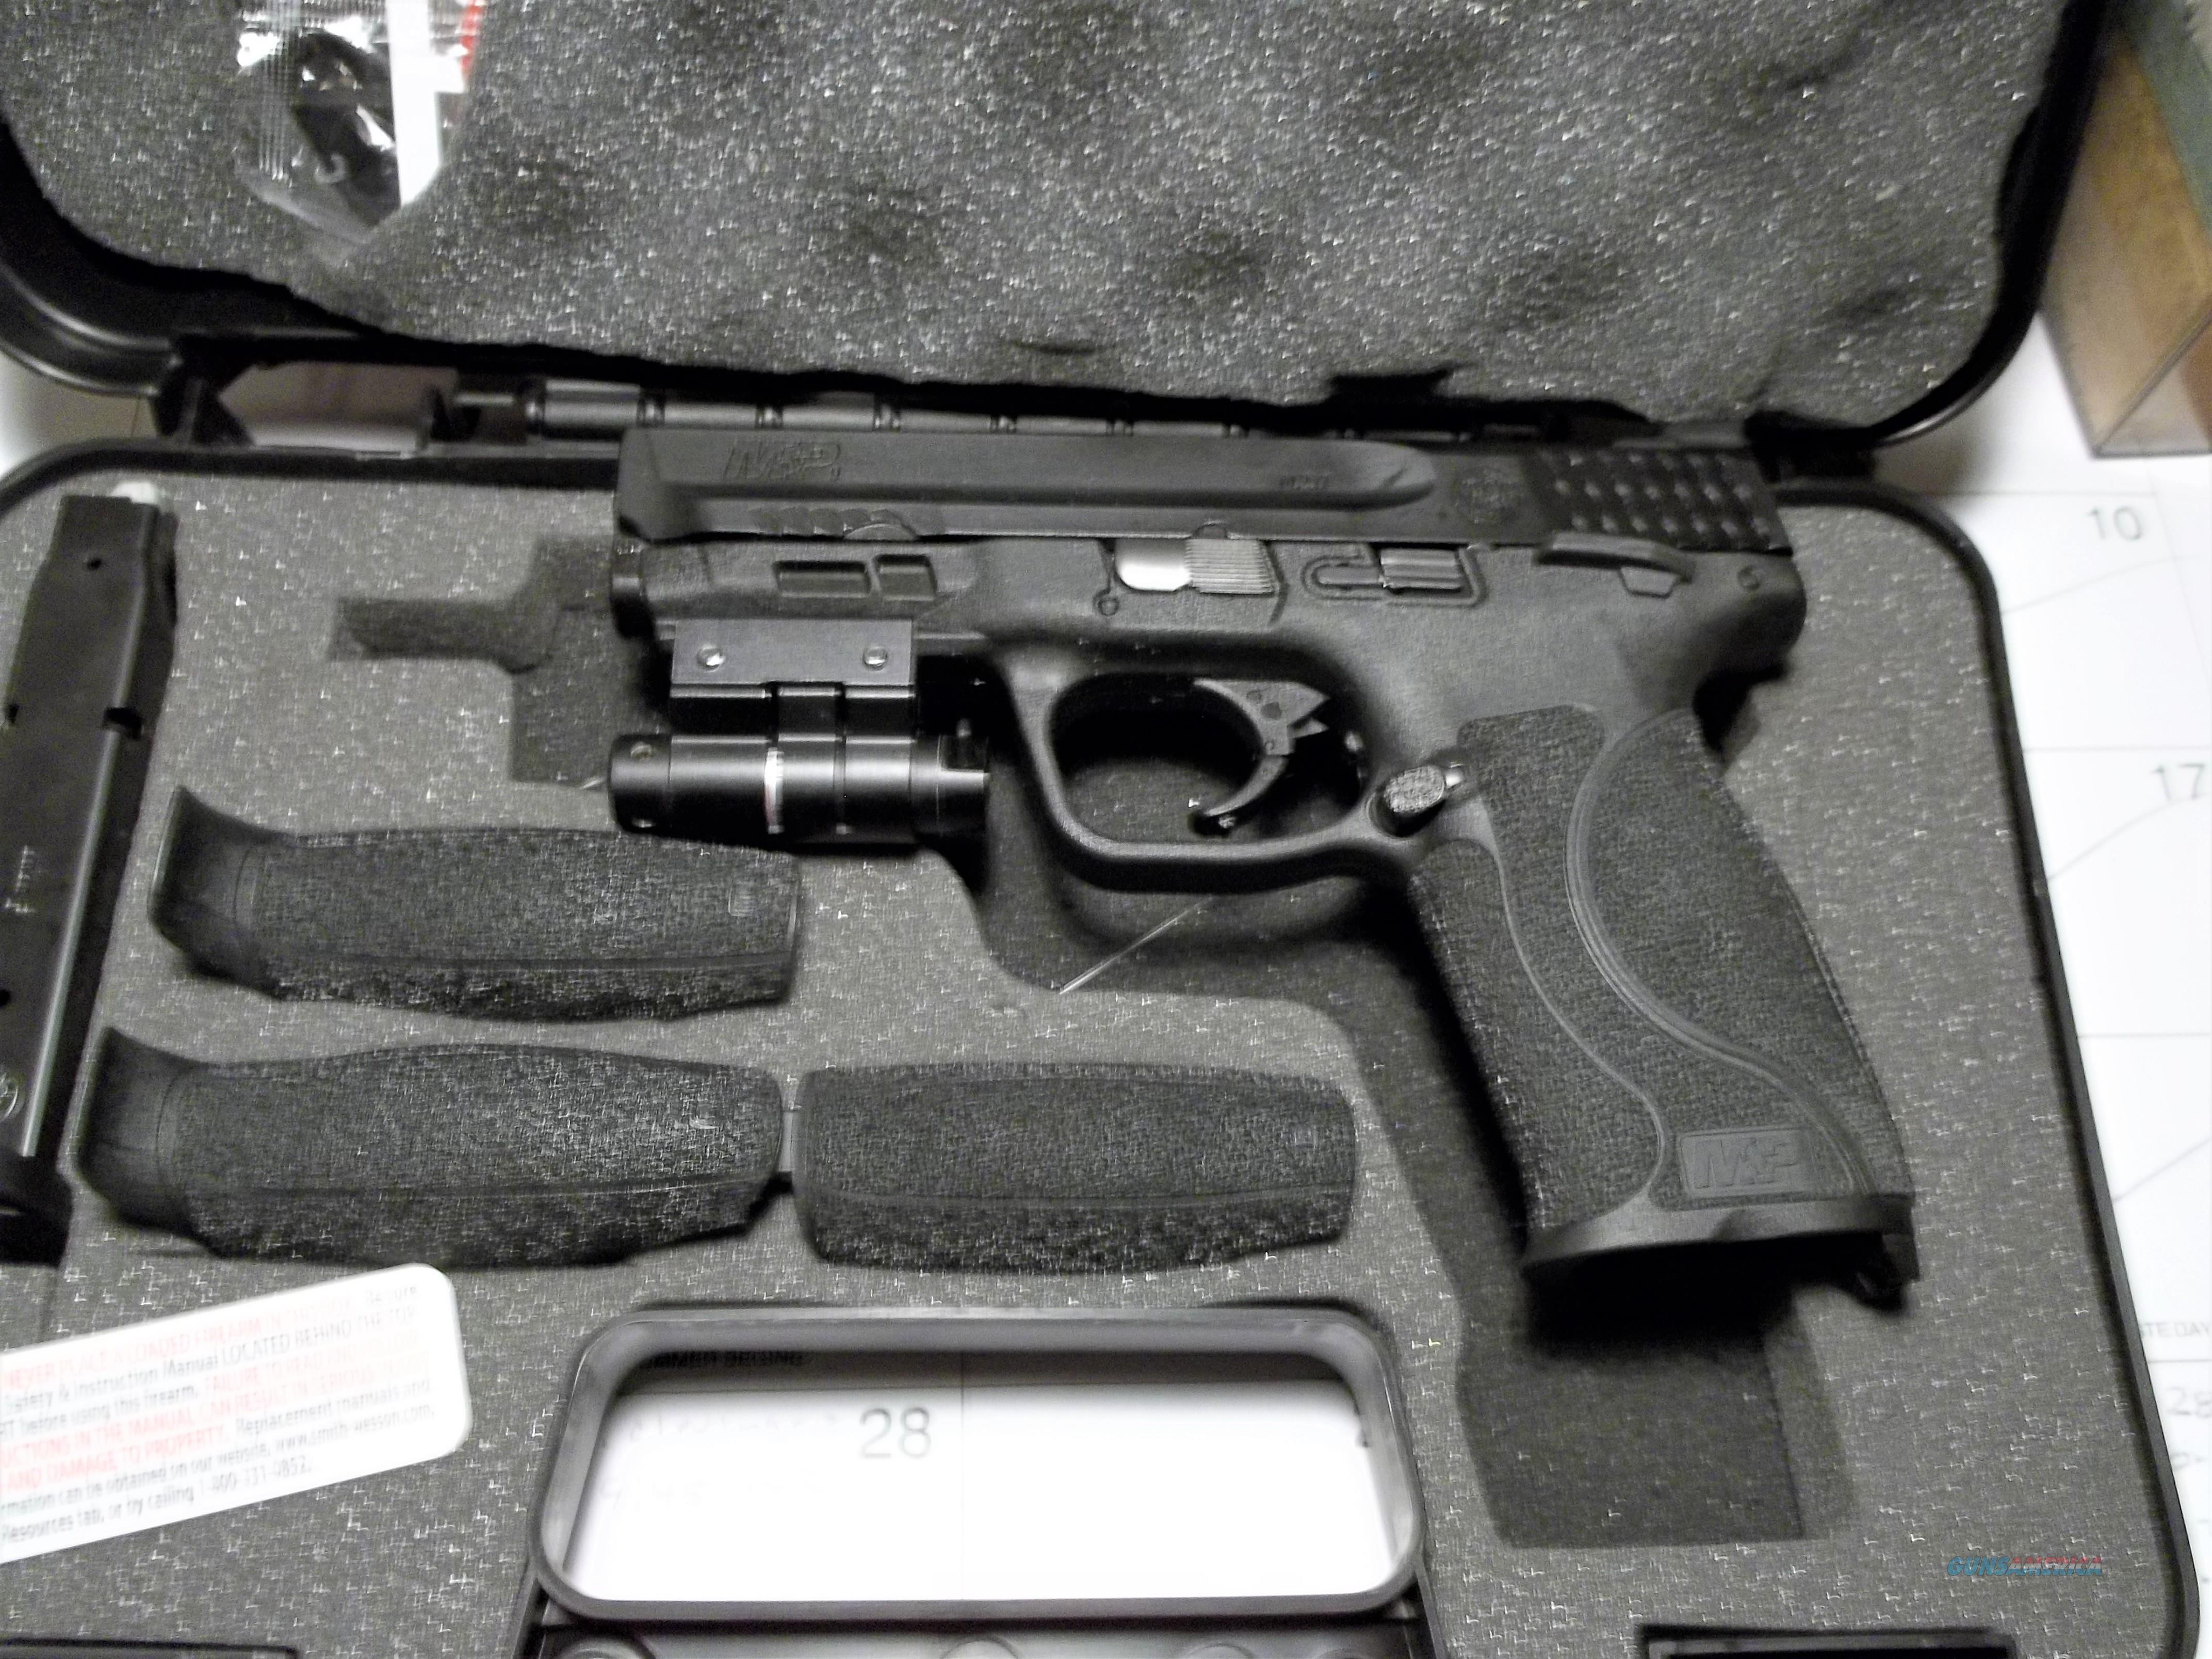 NIB S&W M&P9 M2.0 TS 9mm w/Safety & Laser  Guns > Pistols > Smith & Wesson Pistols - Autos > Polymer Frame